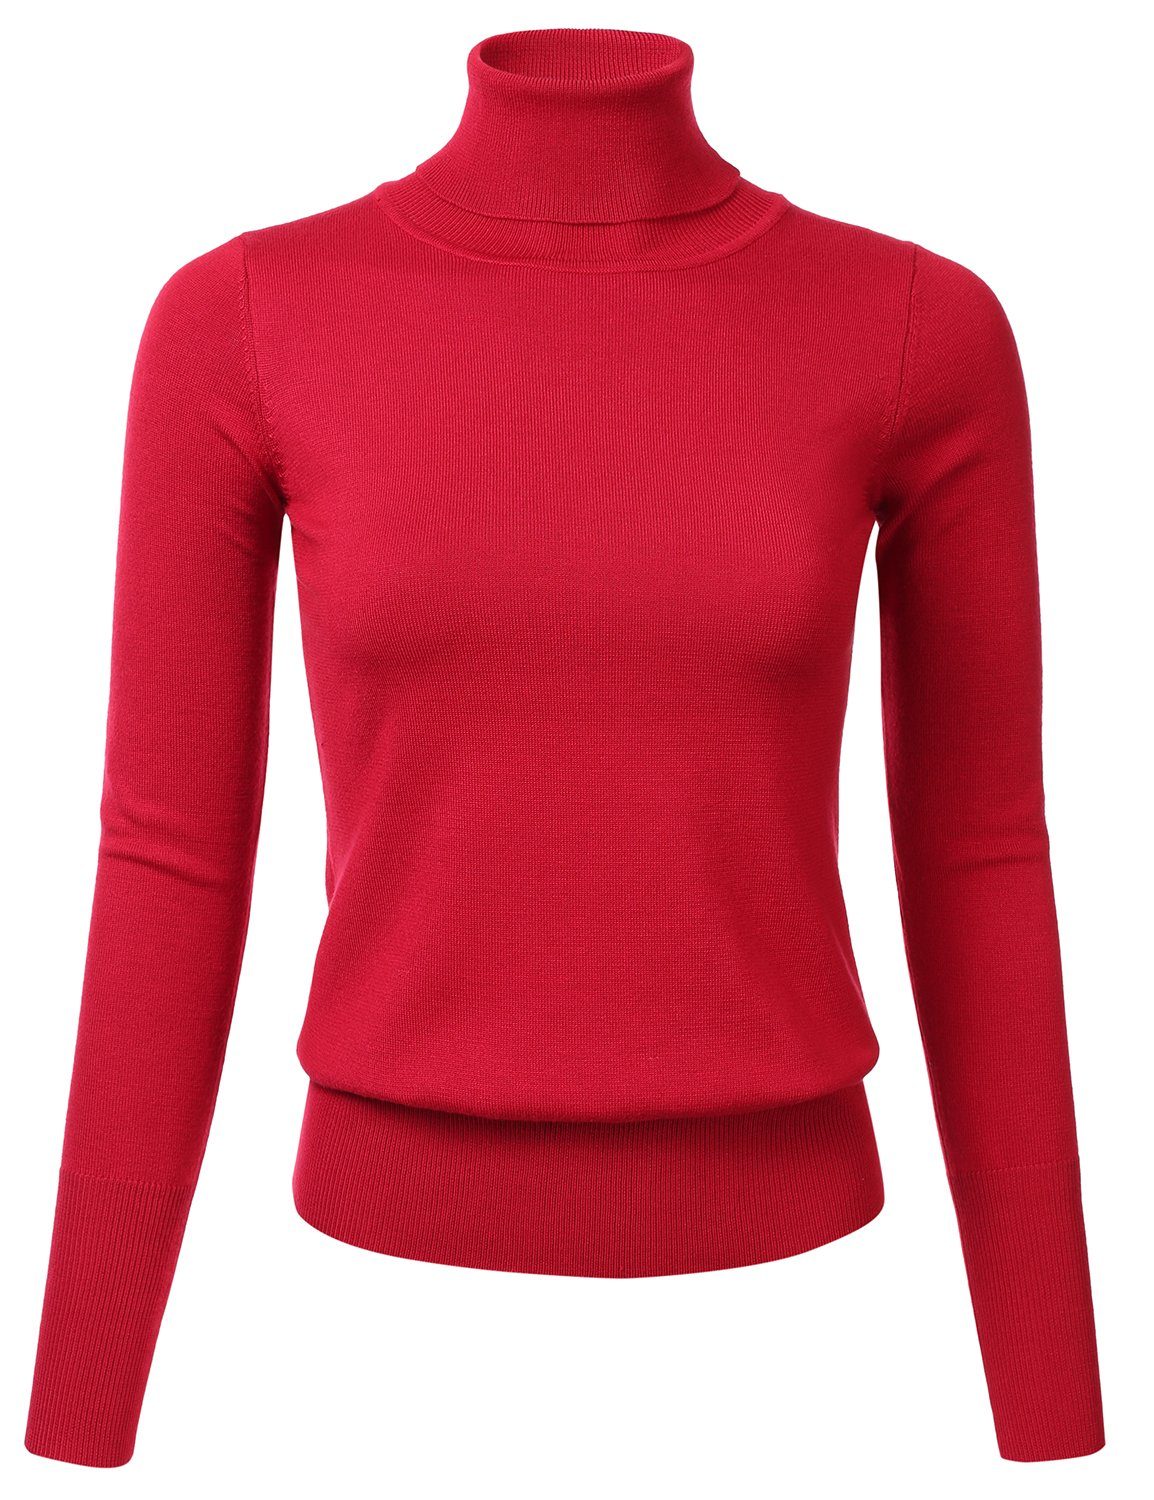 FLORIA Womens Stretch Knit Long Sleeve Turtleneck Top Pullover Sweater Red S